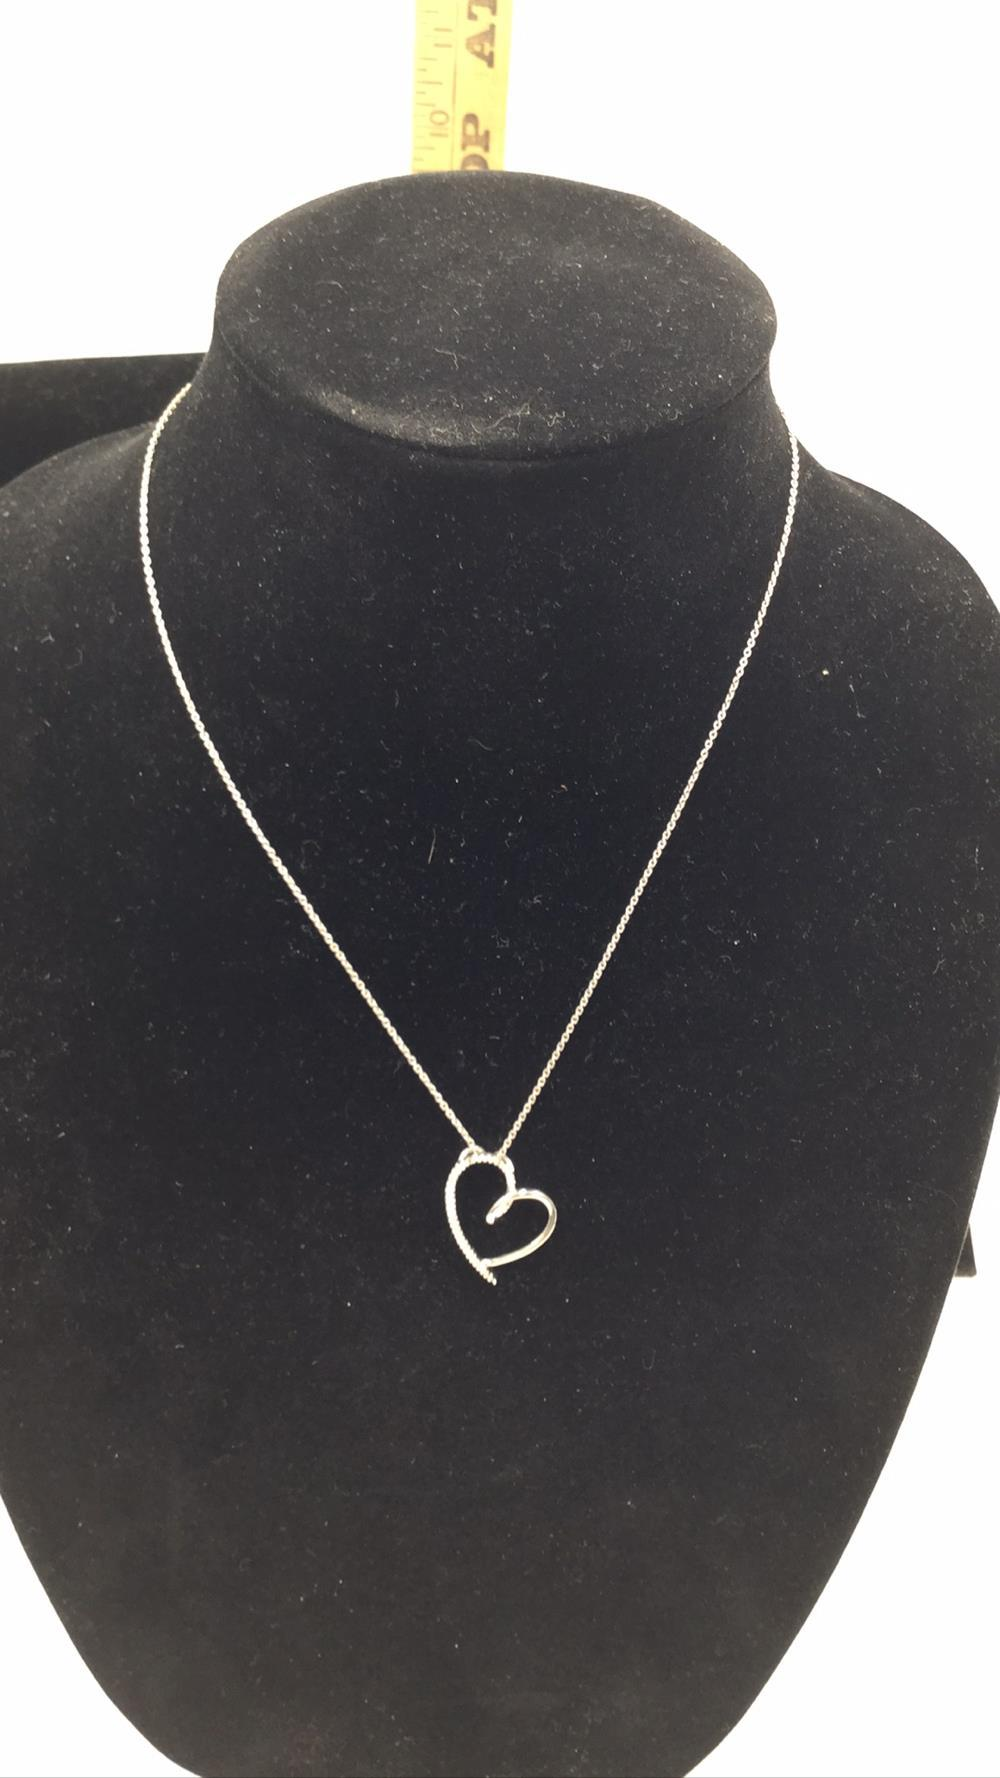 Diamond and sterling necklace and pendant